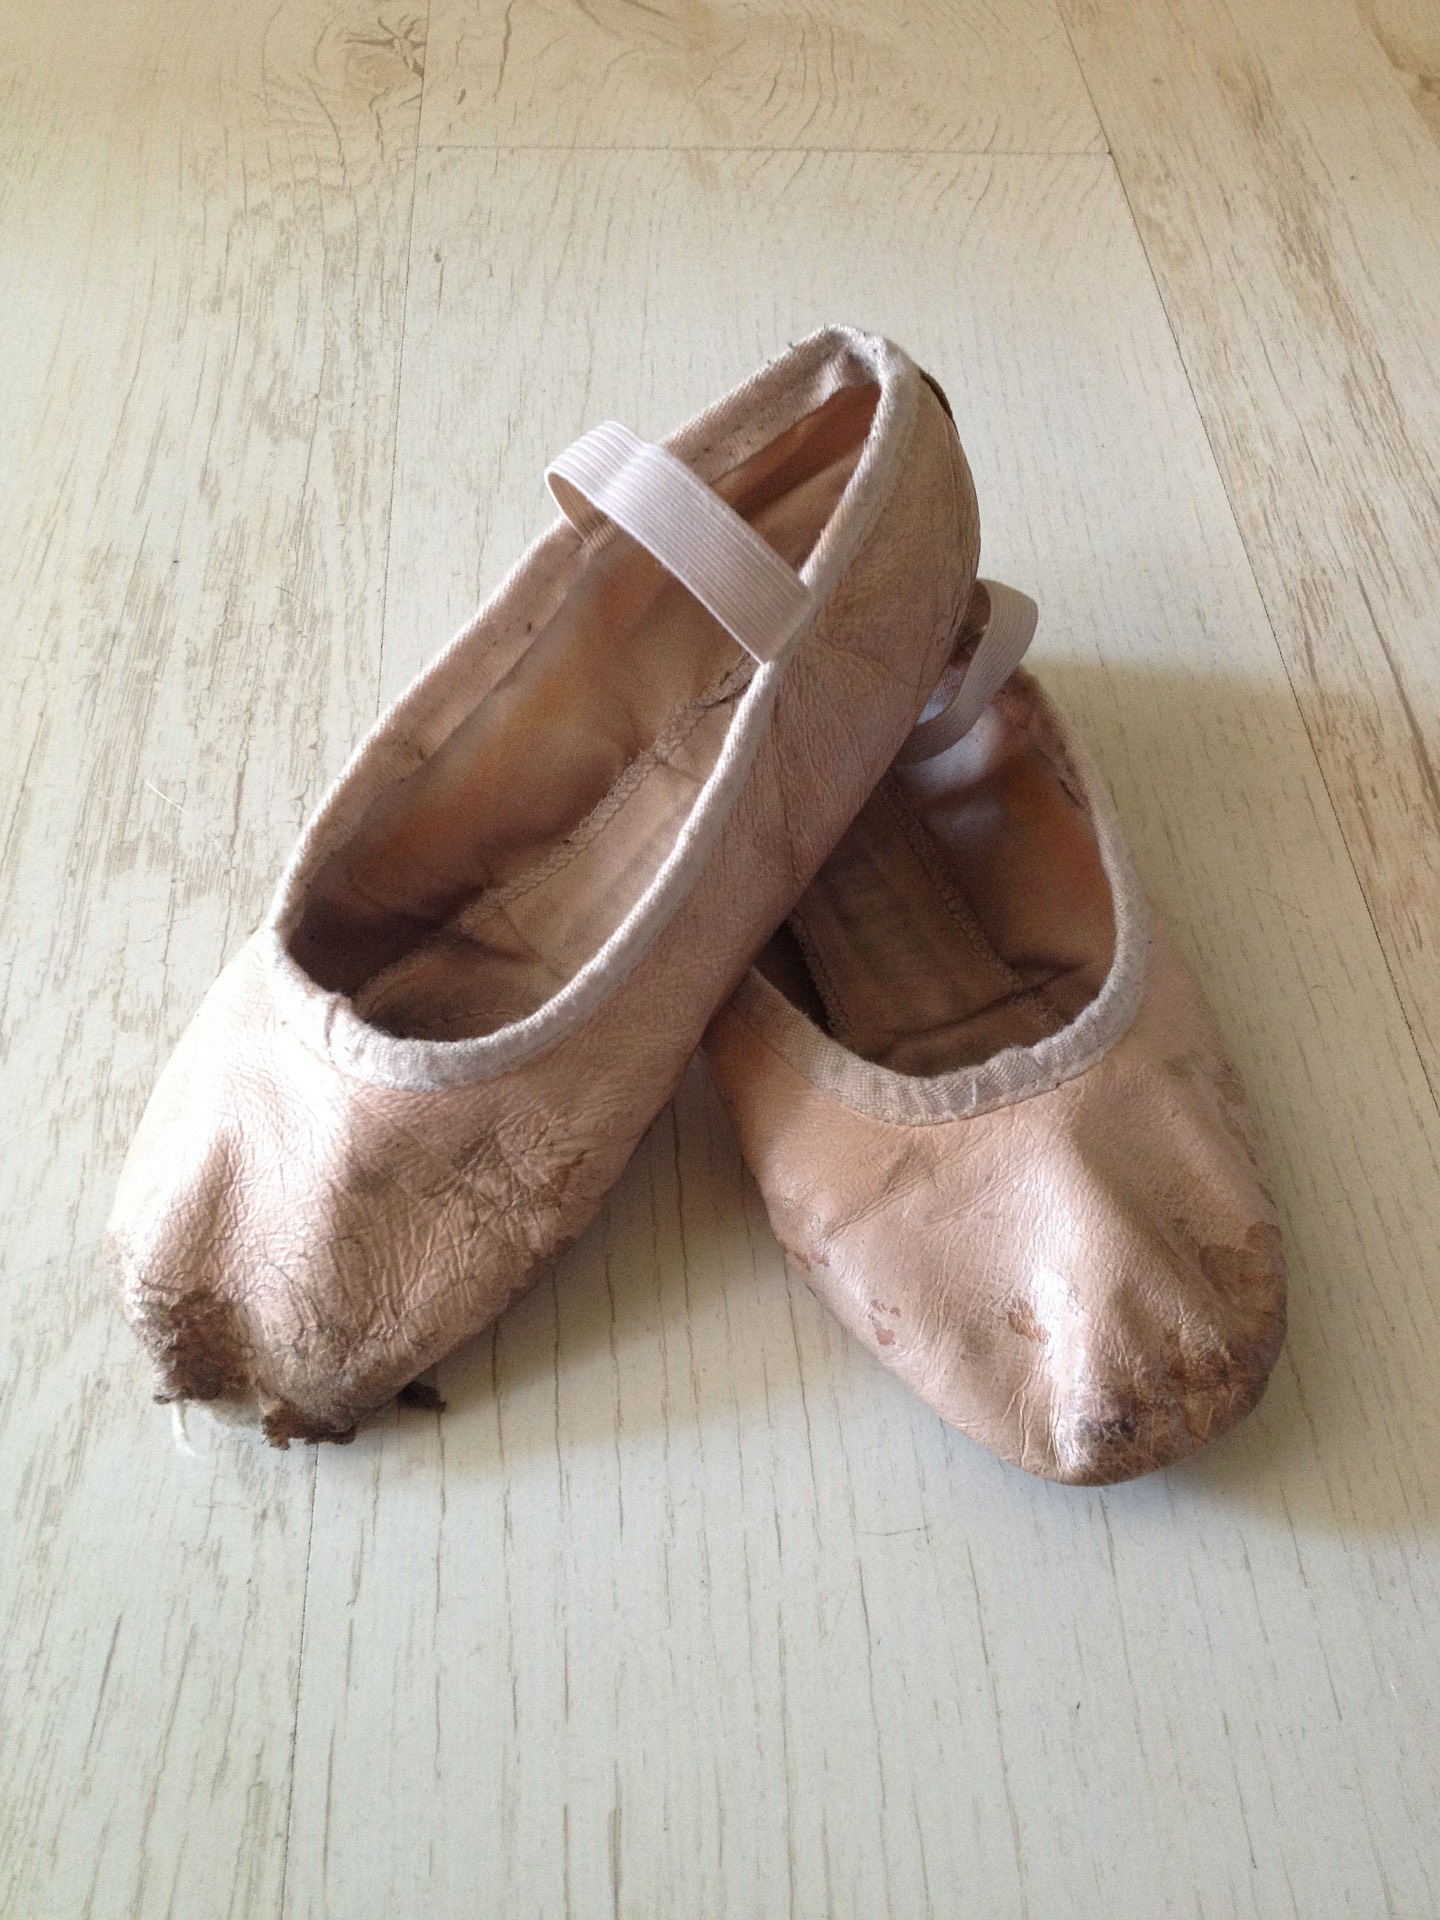 Hacks to Extend the Life of Dance Shoes